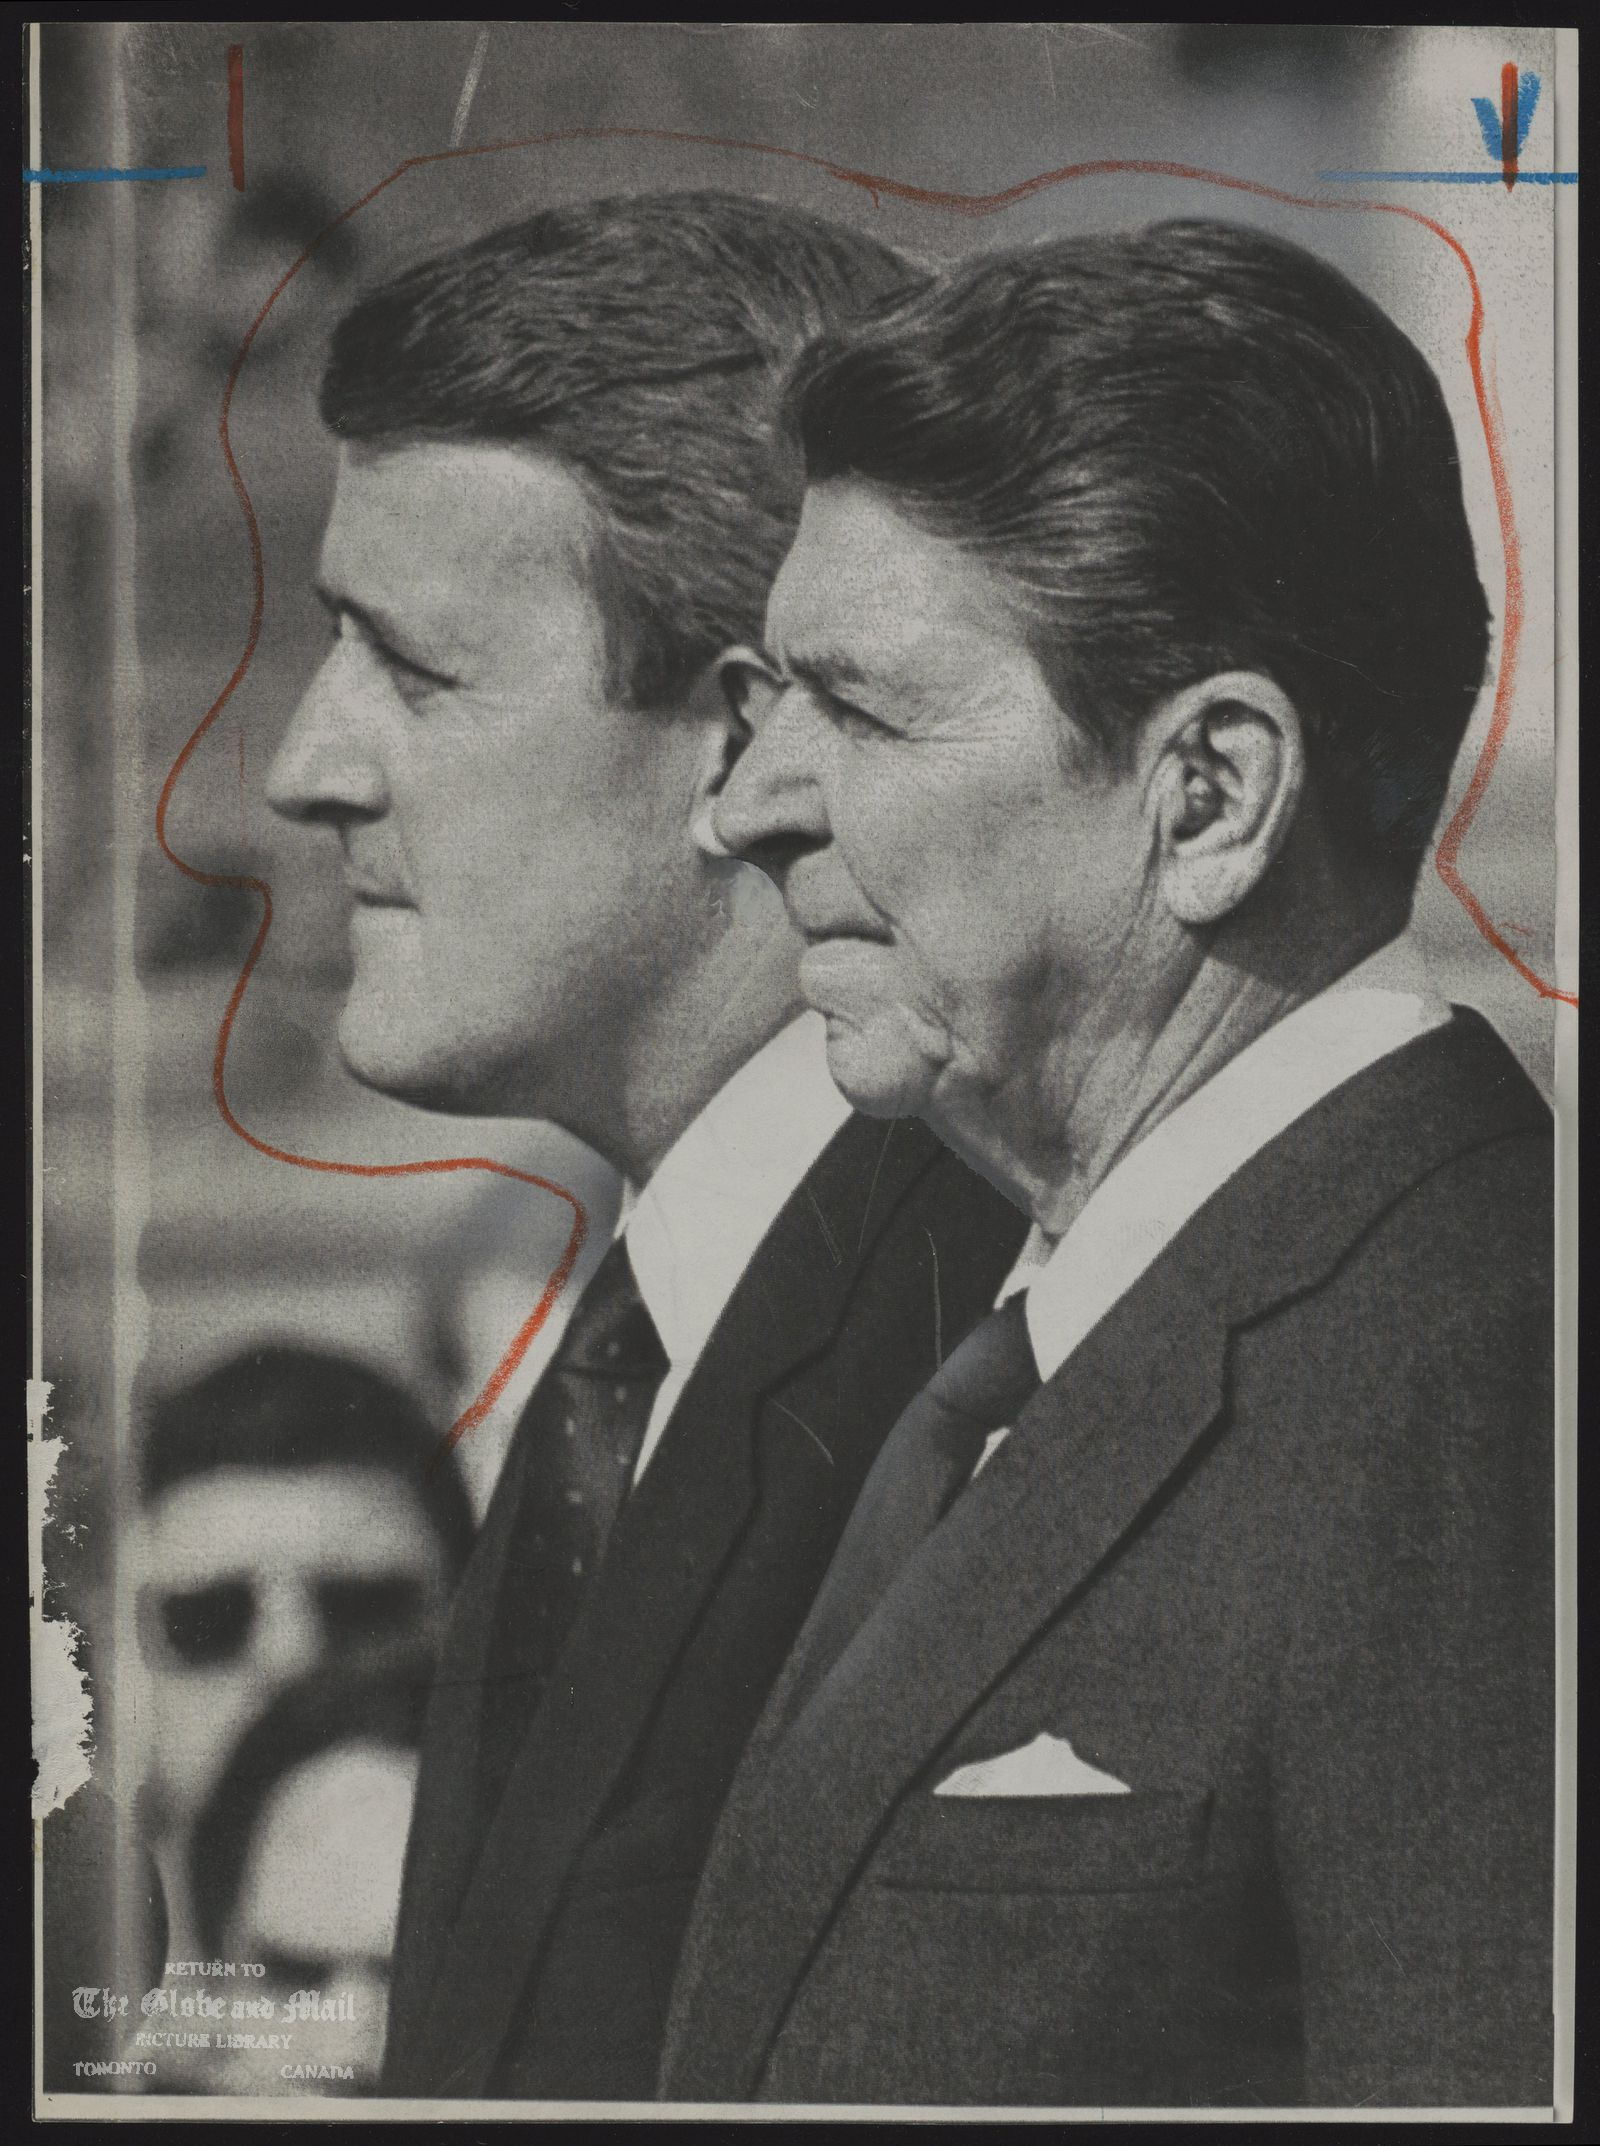 The notes transcribed from the back of this photograph are as follows: Brian MULRONEY Canada. Politician [with President Ronald Regan]